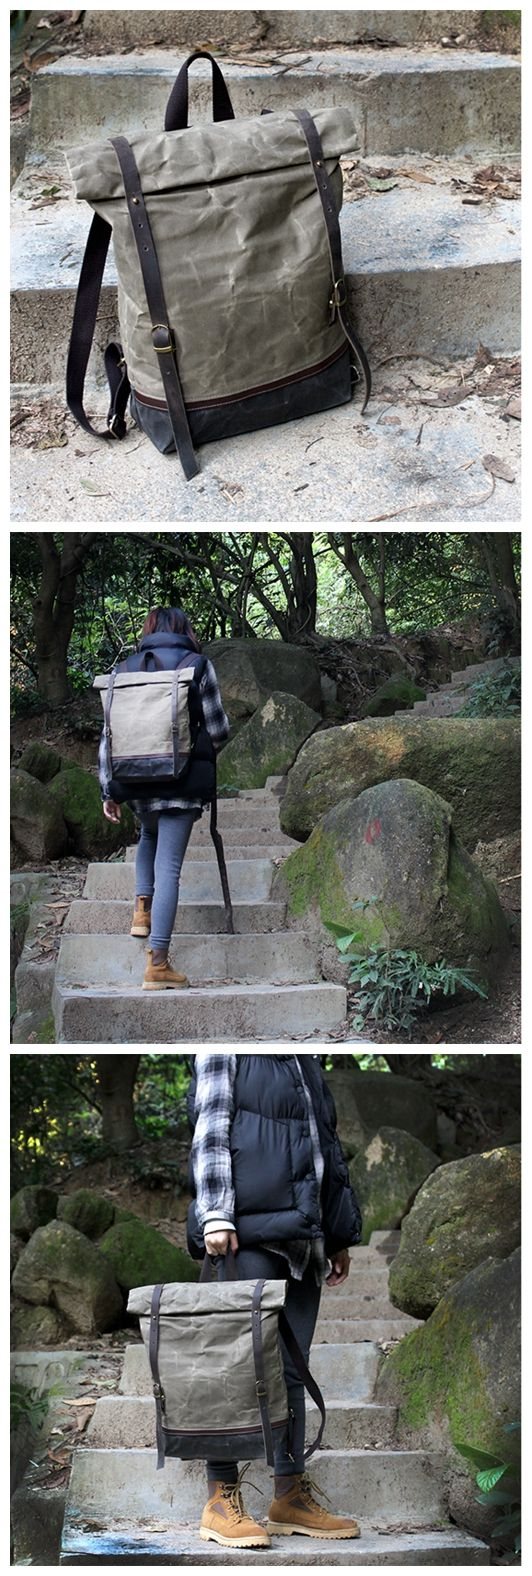 Handcrafted Waxed Canvas Travel Backpack Hiking Waterproof Rucksack School Backpack Large Backpack Laptop Bag 14116 -------------------------------- - Waxed waterproof canvas - Cotton lining - Inside